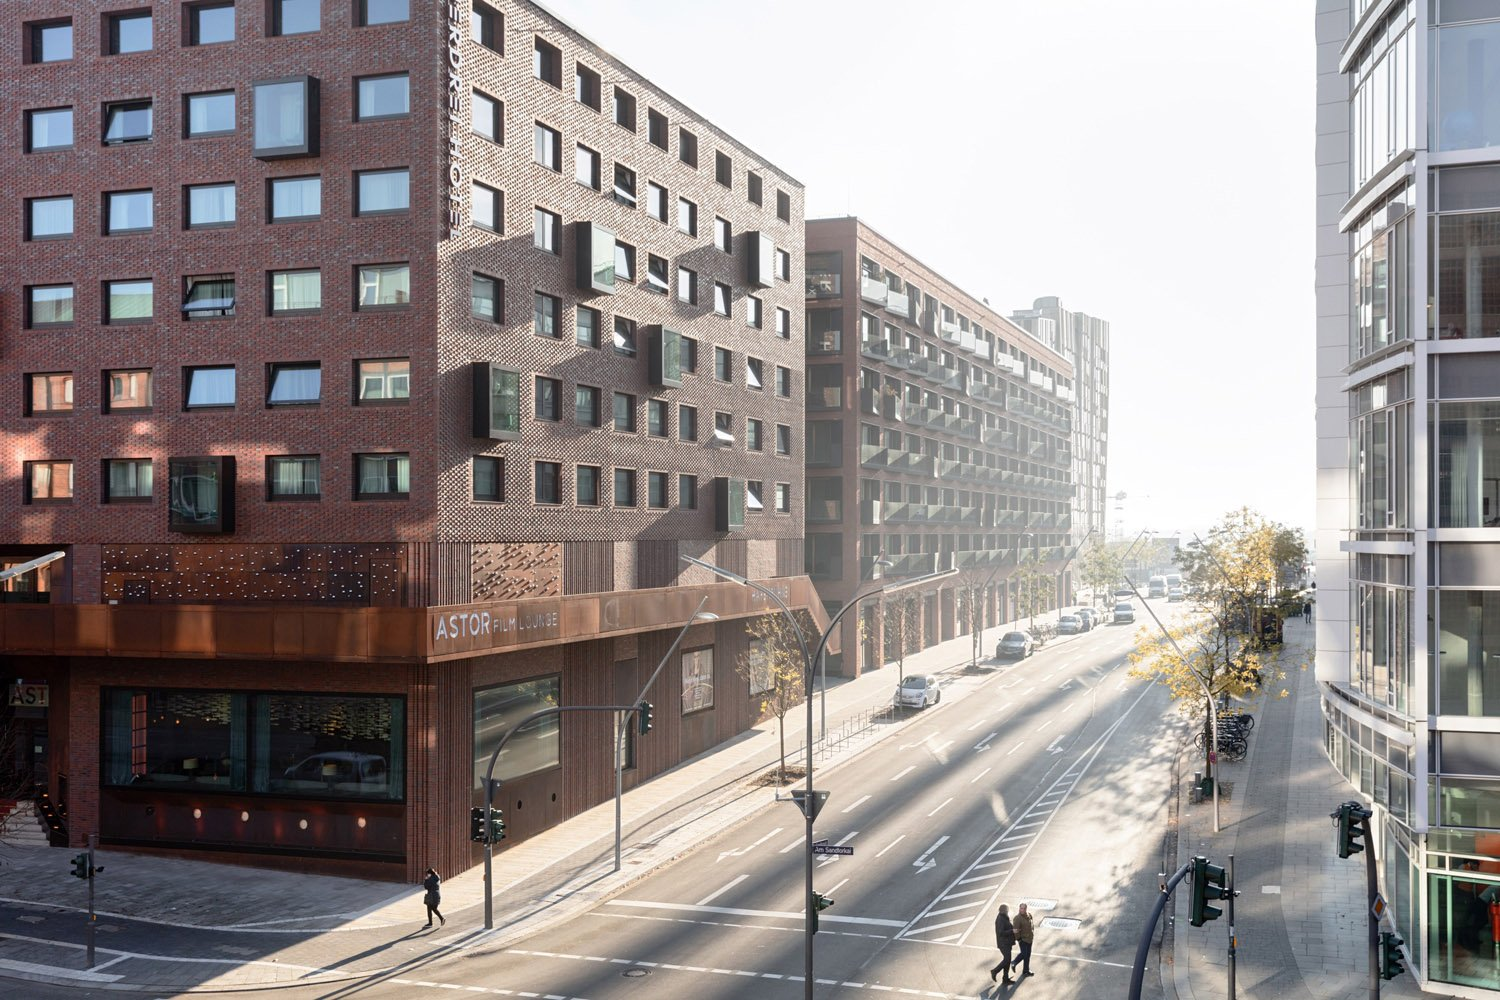 From the outside you can hardly detect its functional diversity – but behind the facades there is a sophisticated mix of urban housing, a hotel, a top class cinema, a public underground car park, restauran Marcus Bredt